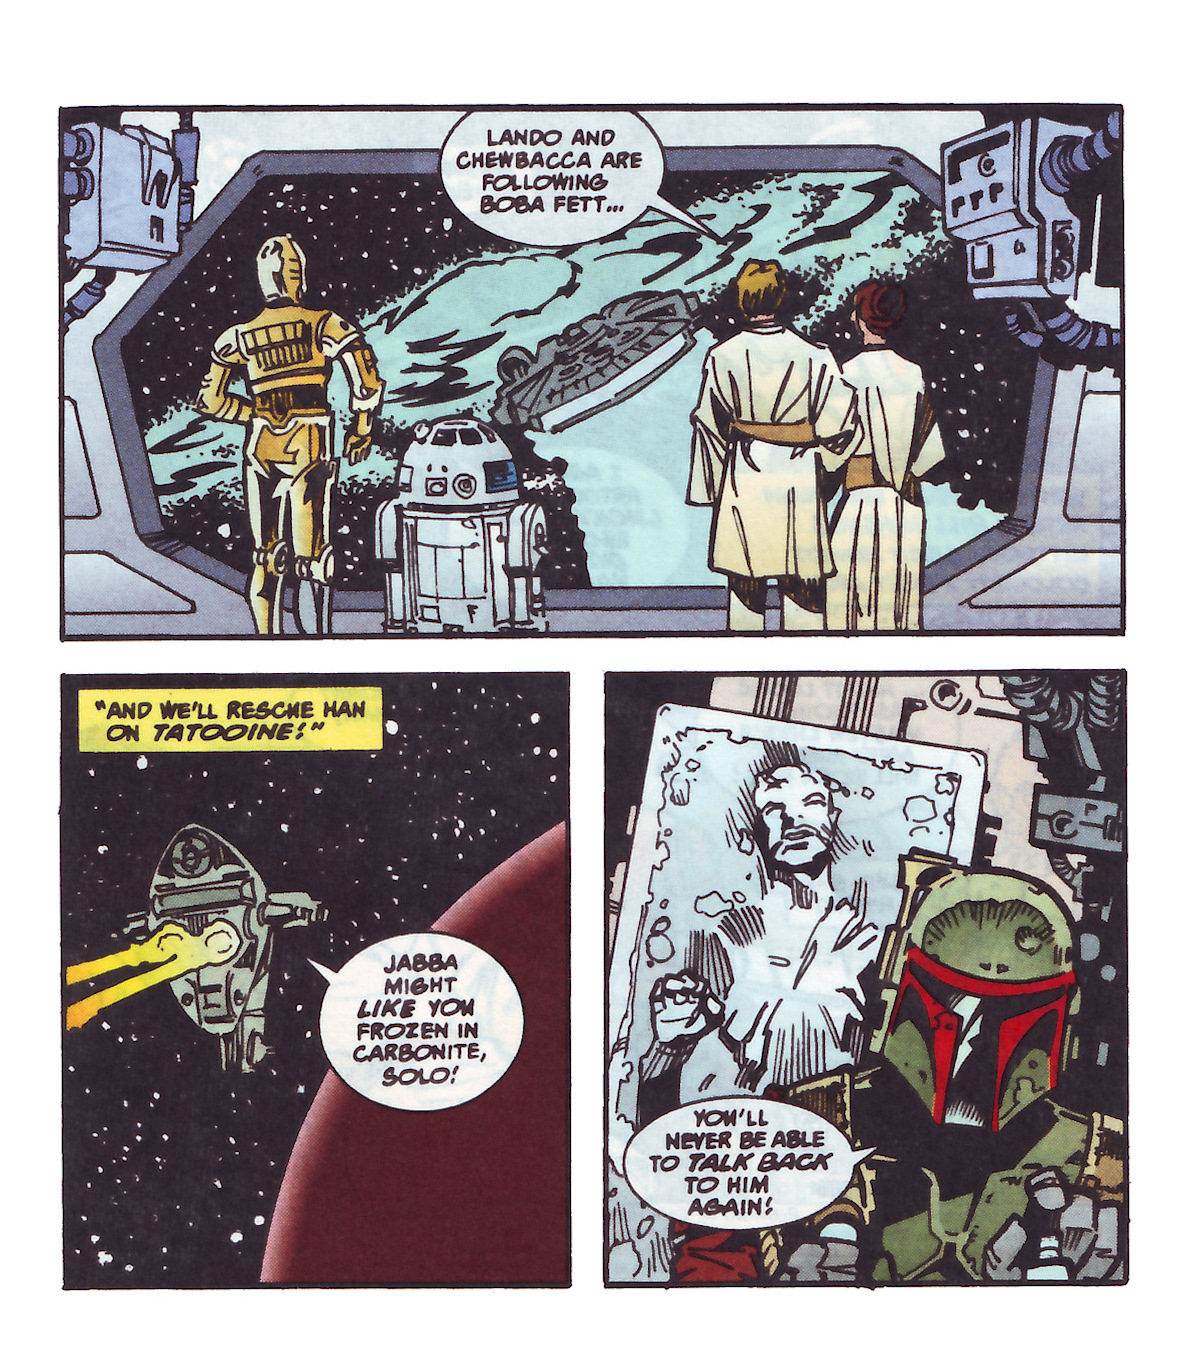 Shadows of the Empire (Micro Machines Mini Comic) (1996)